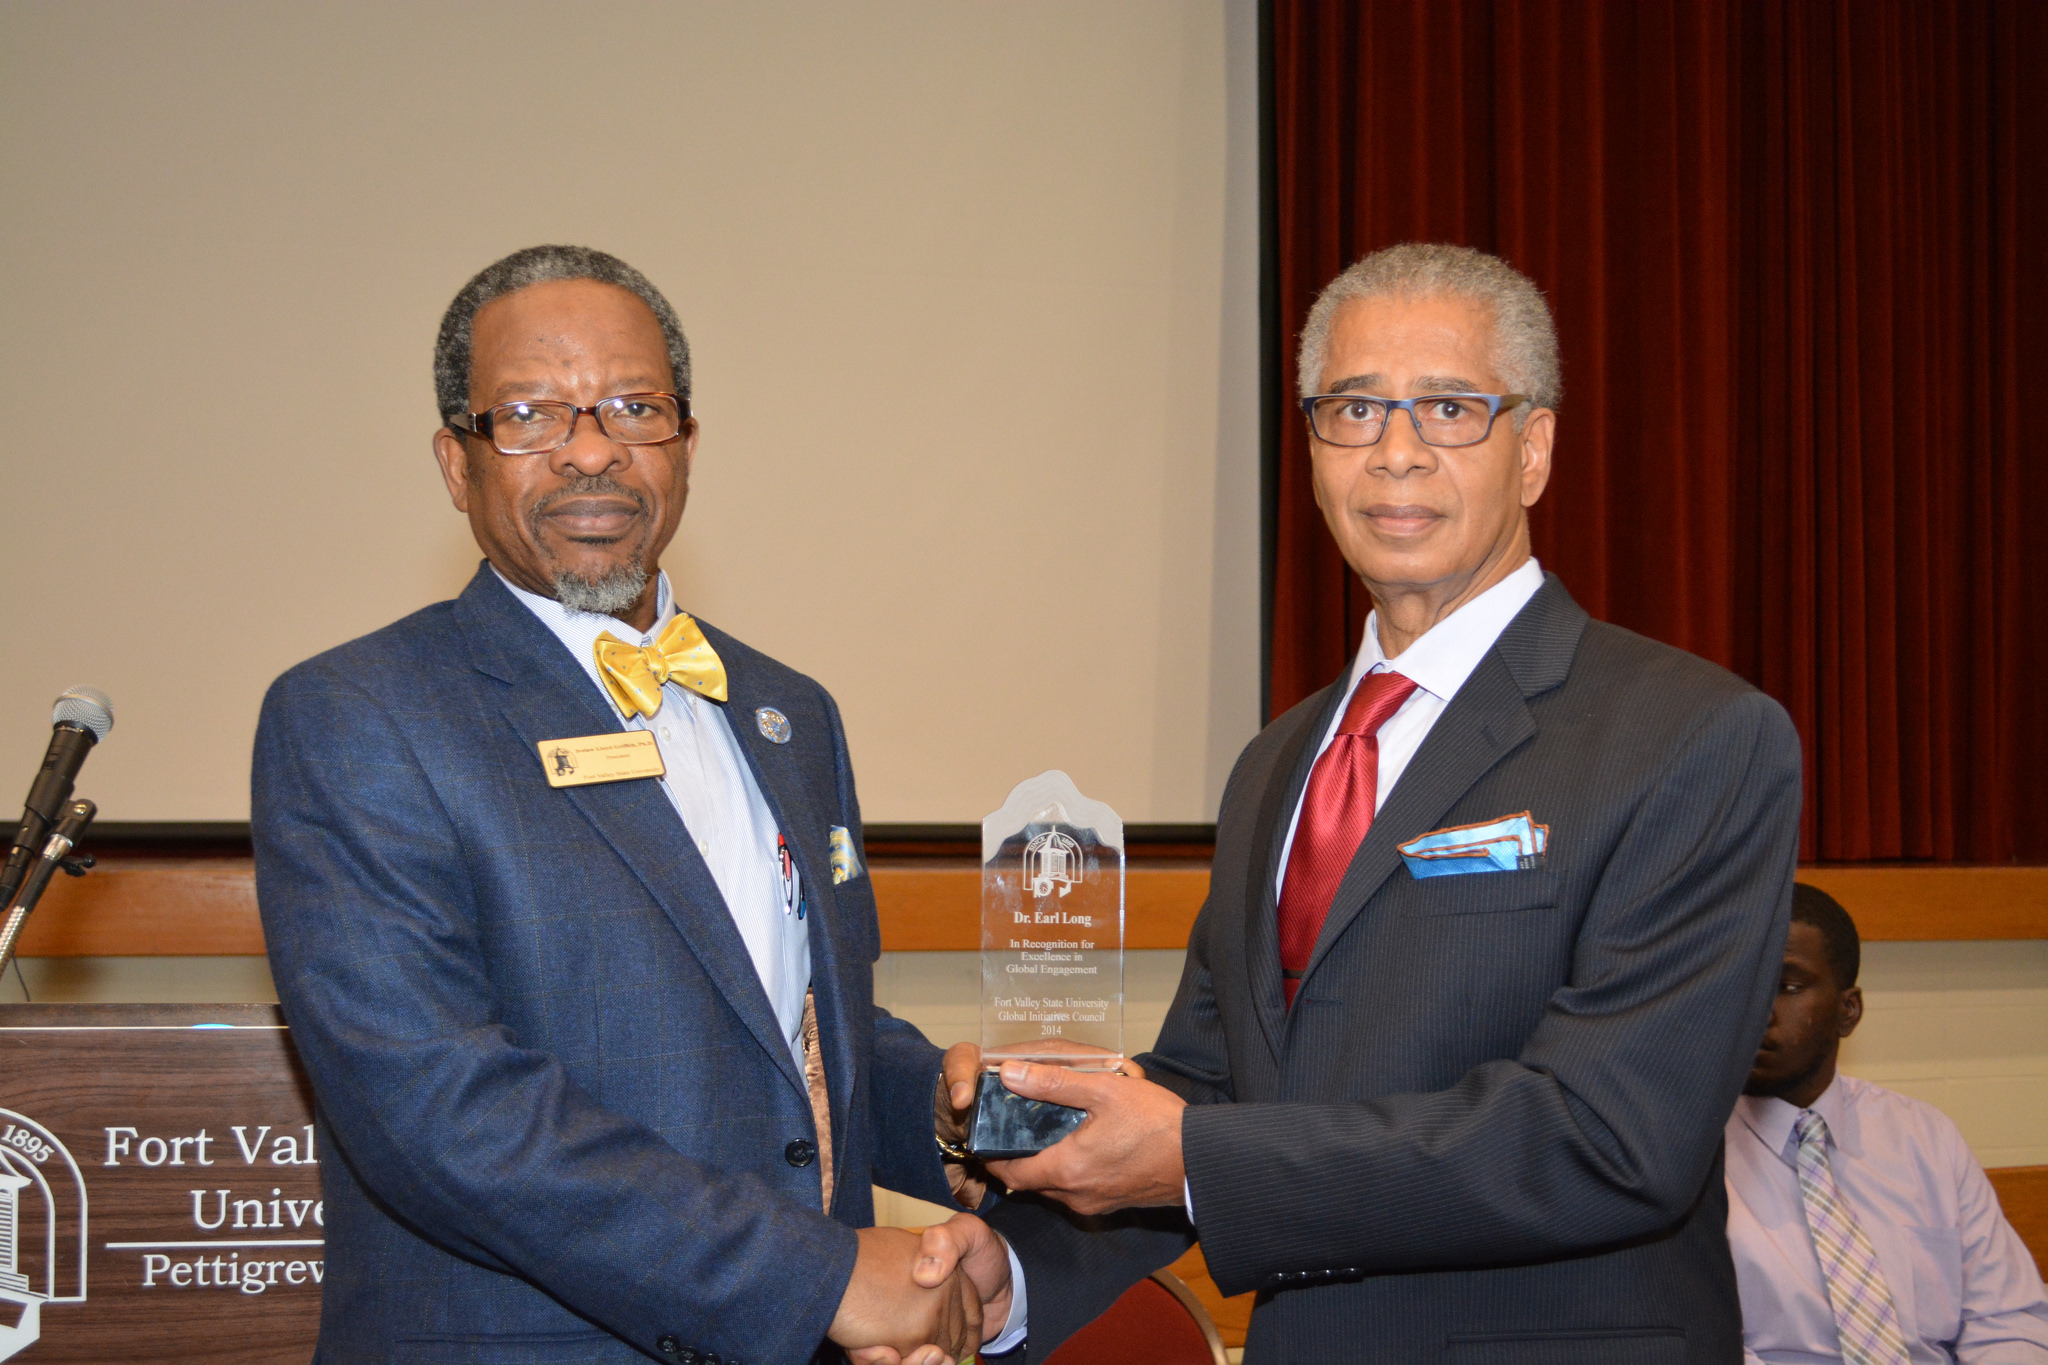 Dr. Earl Long (left) and President Ivelaw Lloyd Griffith